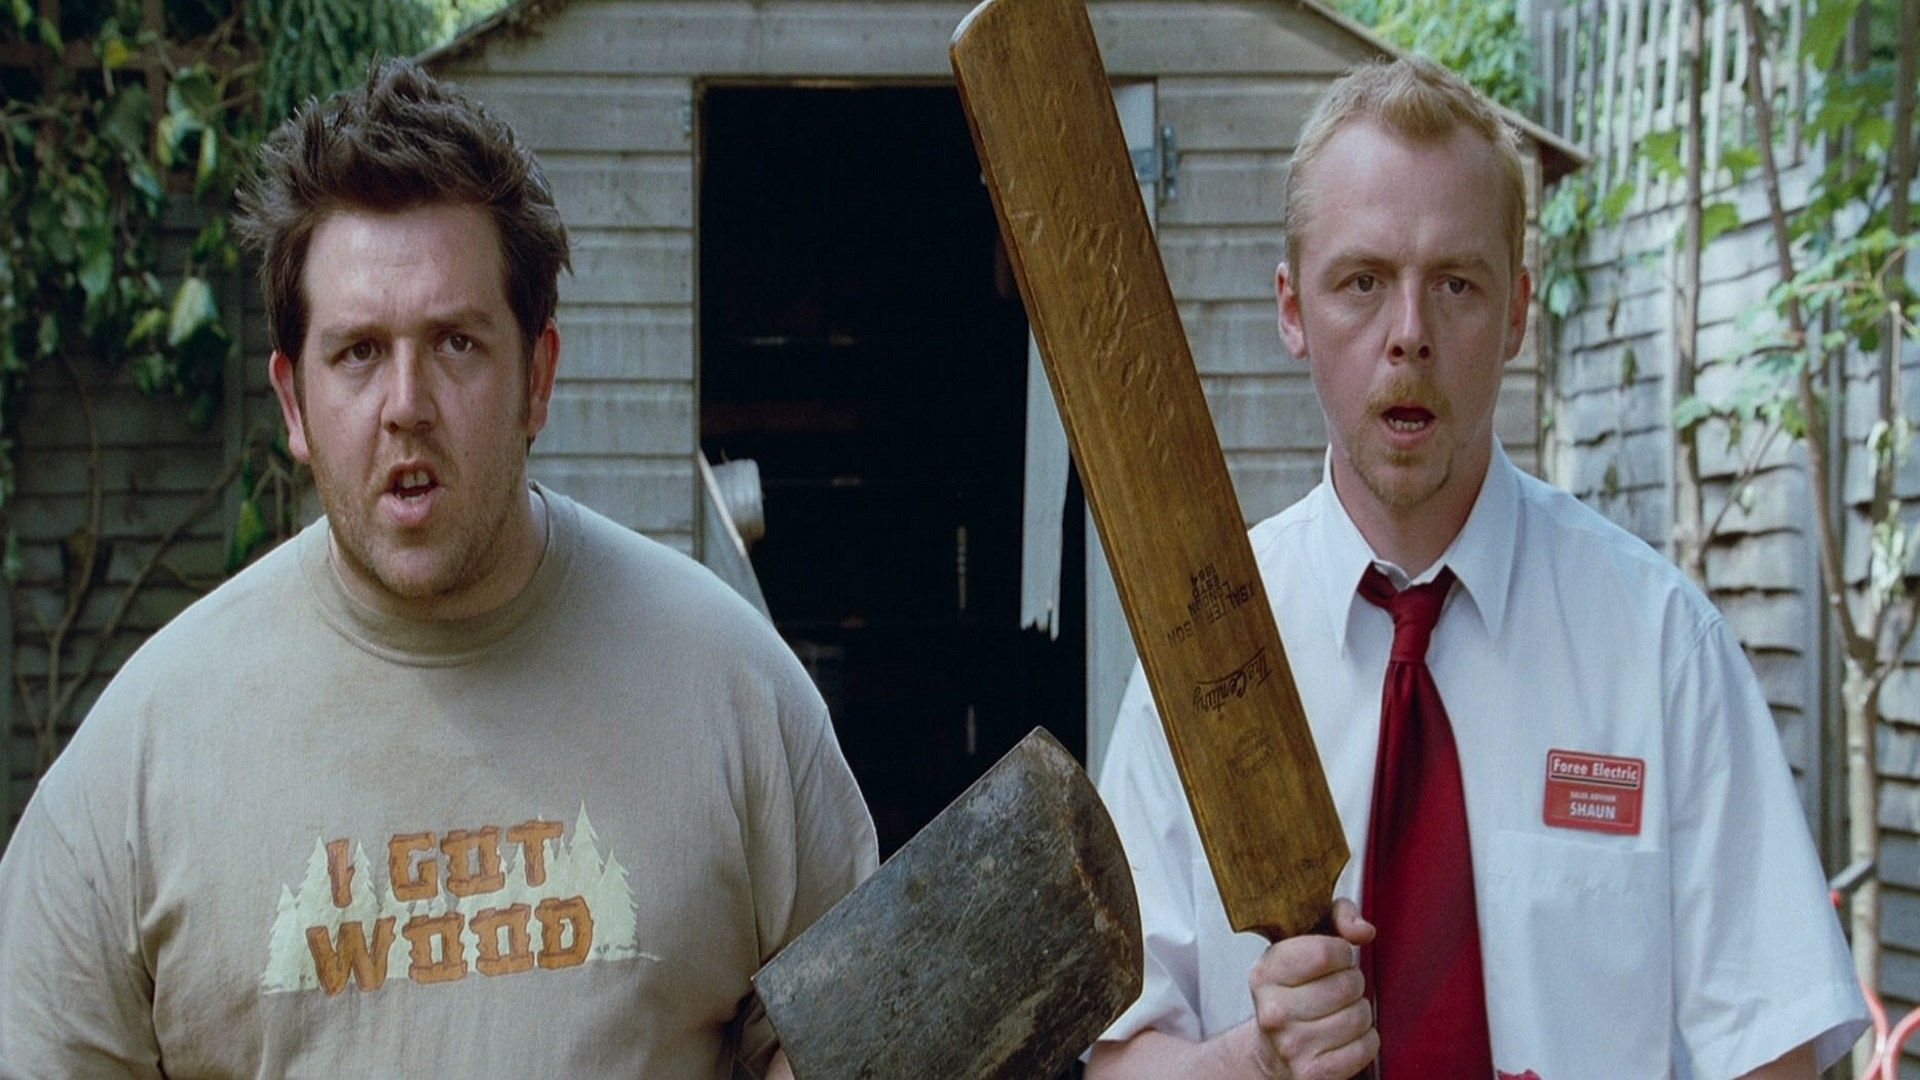 Free Wallpaper And Screensavers For Shaun Of The Dead Buckminster